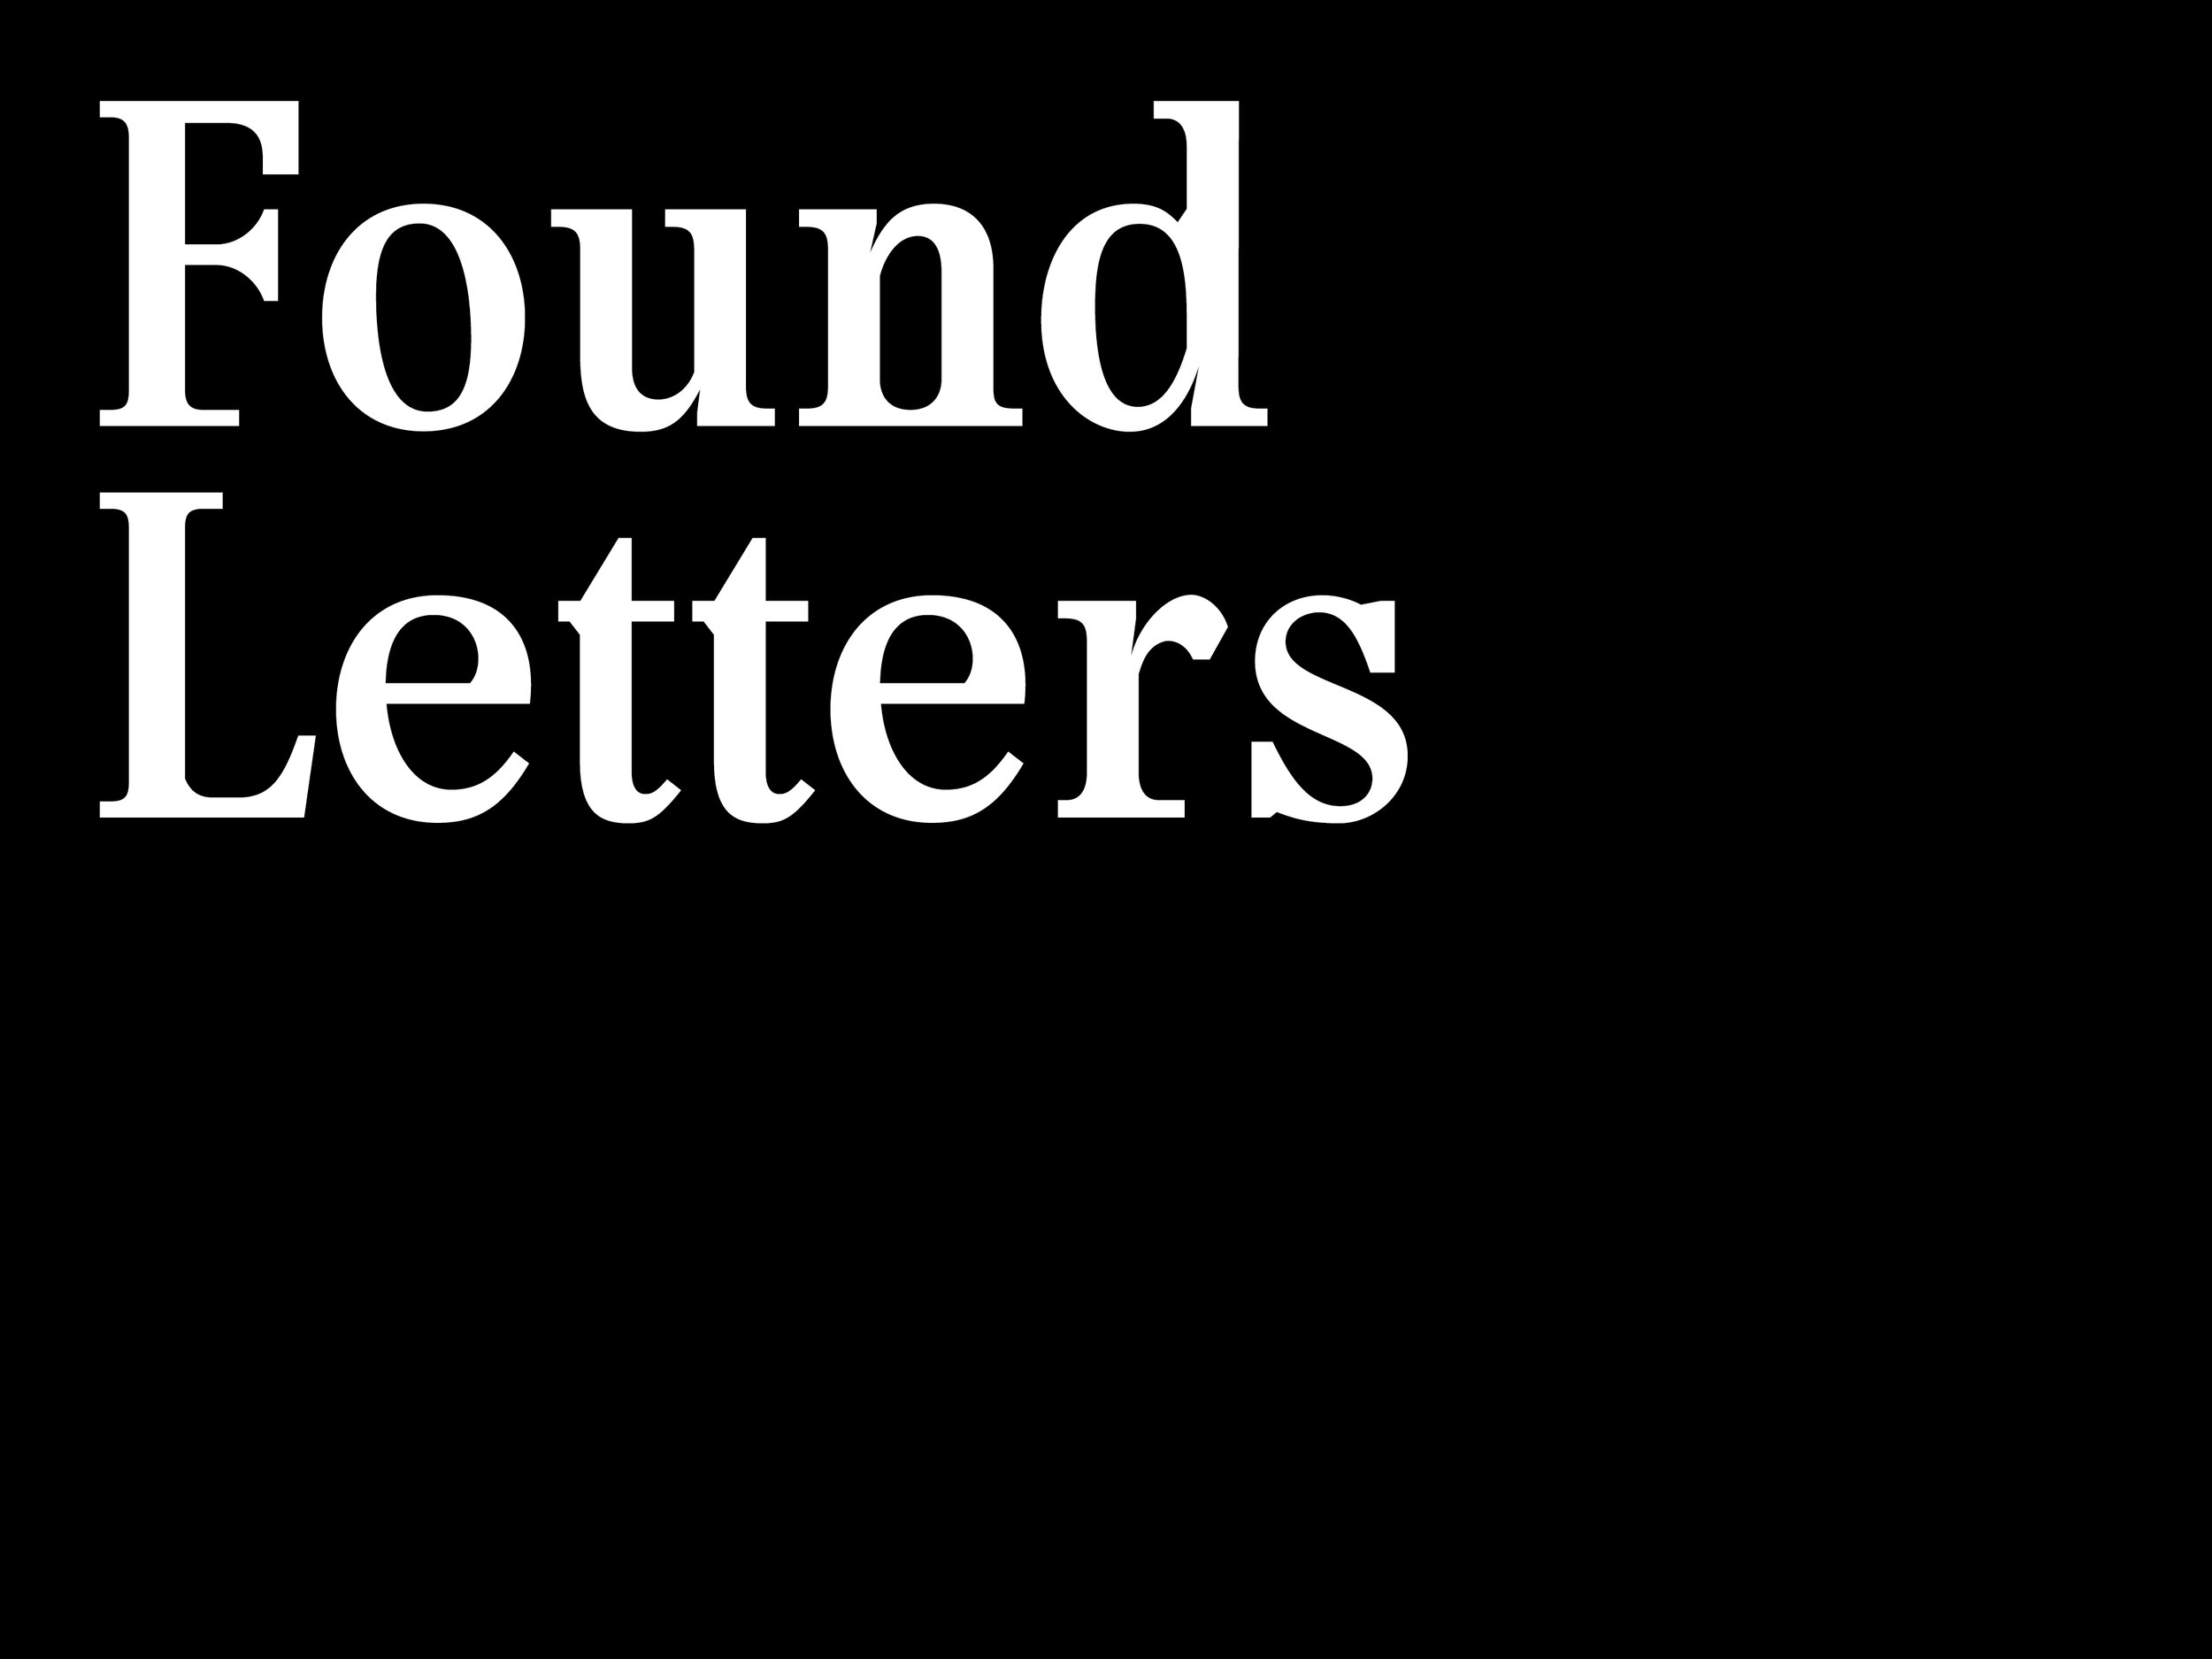 found_letters_web9.jpg